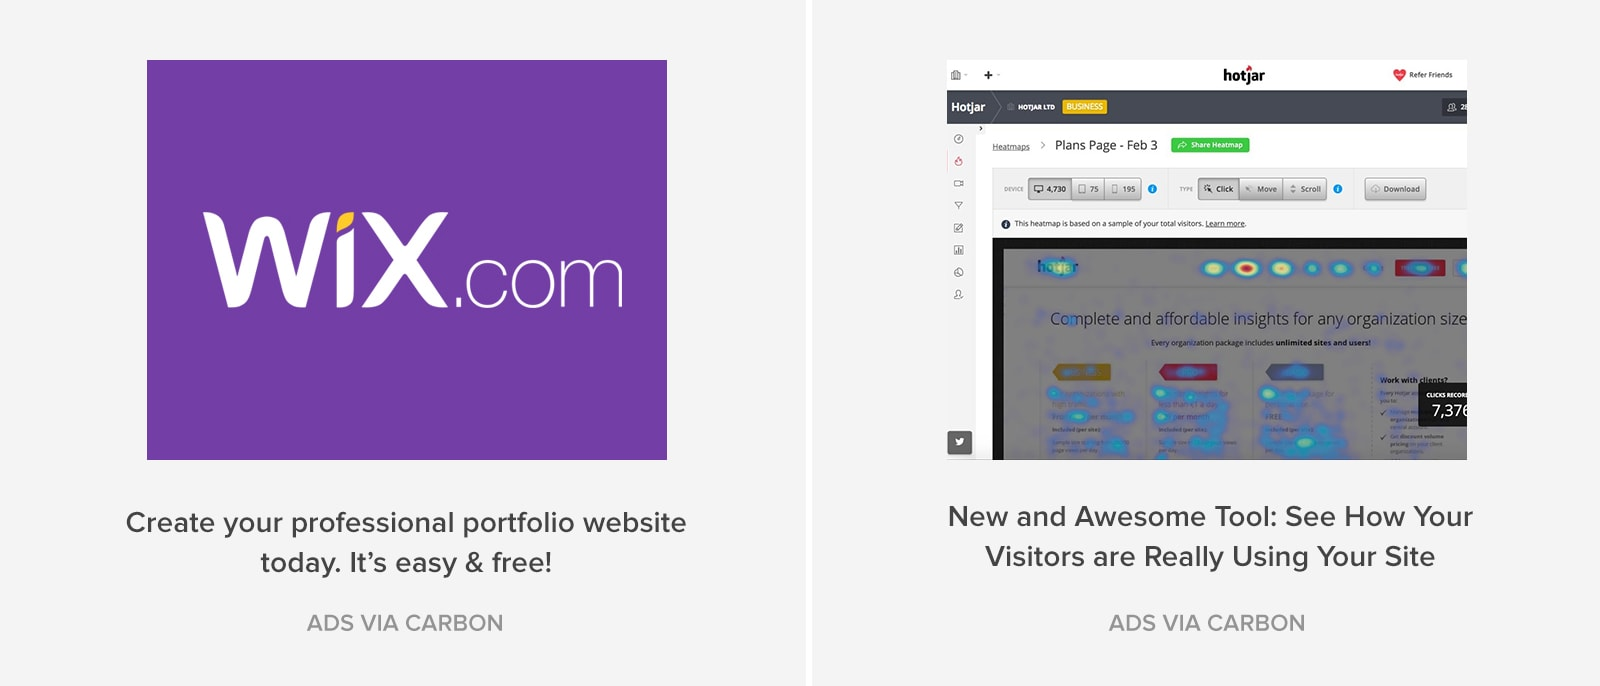 Carbon ads from Wix and Hotjar.